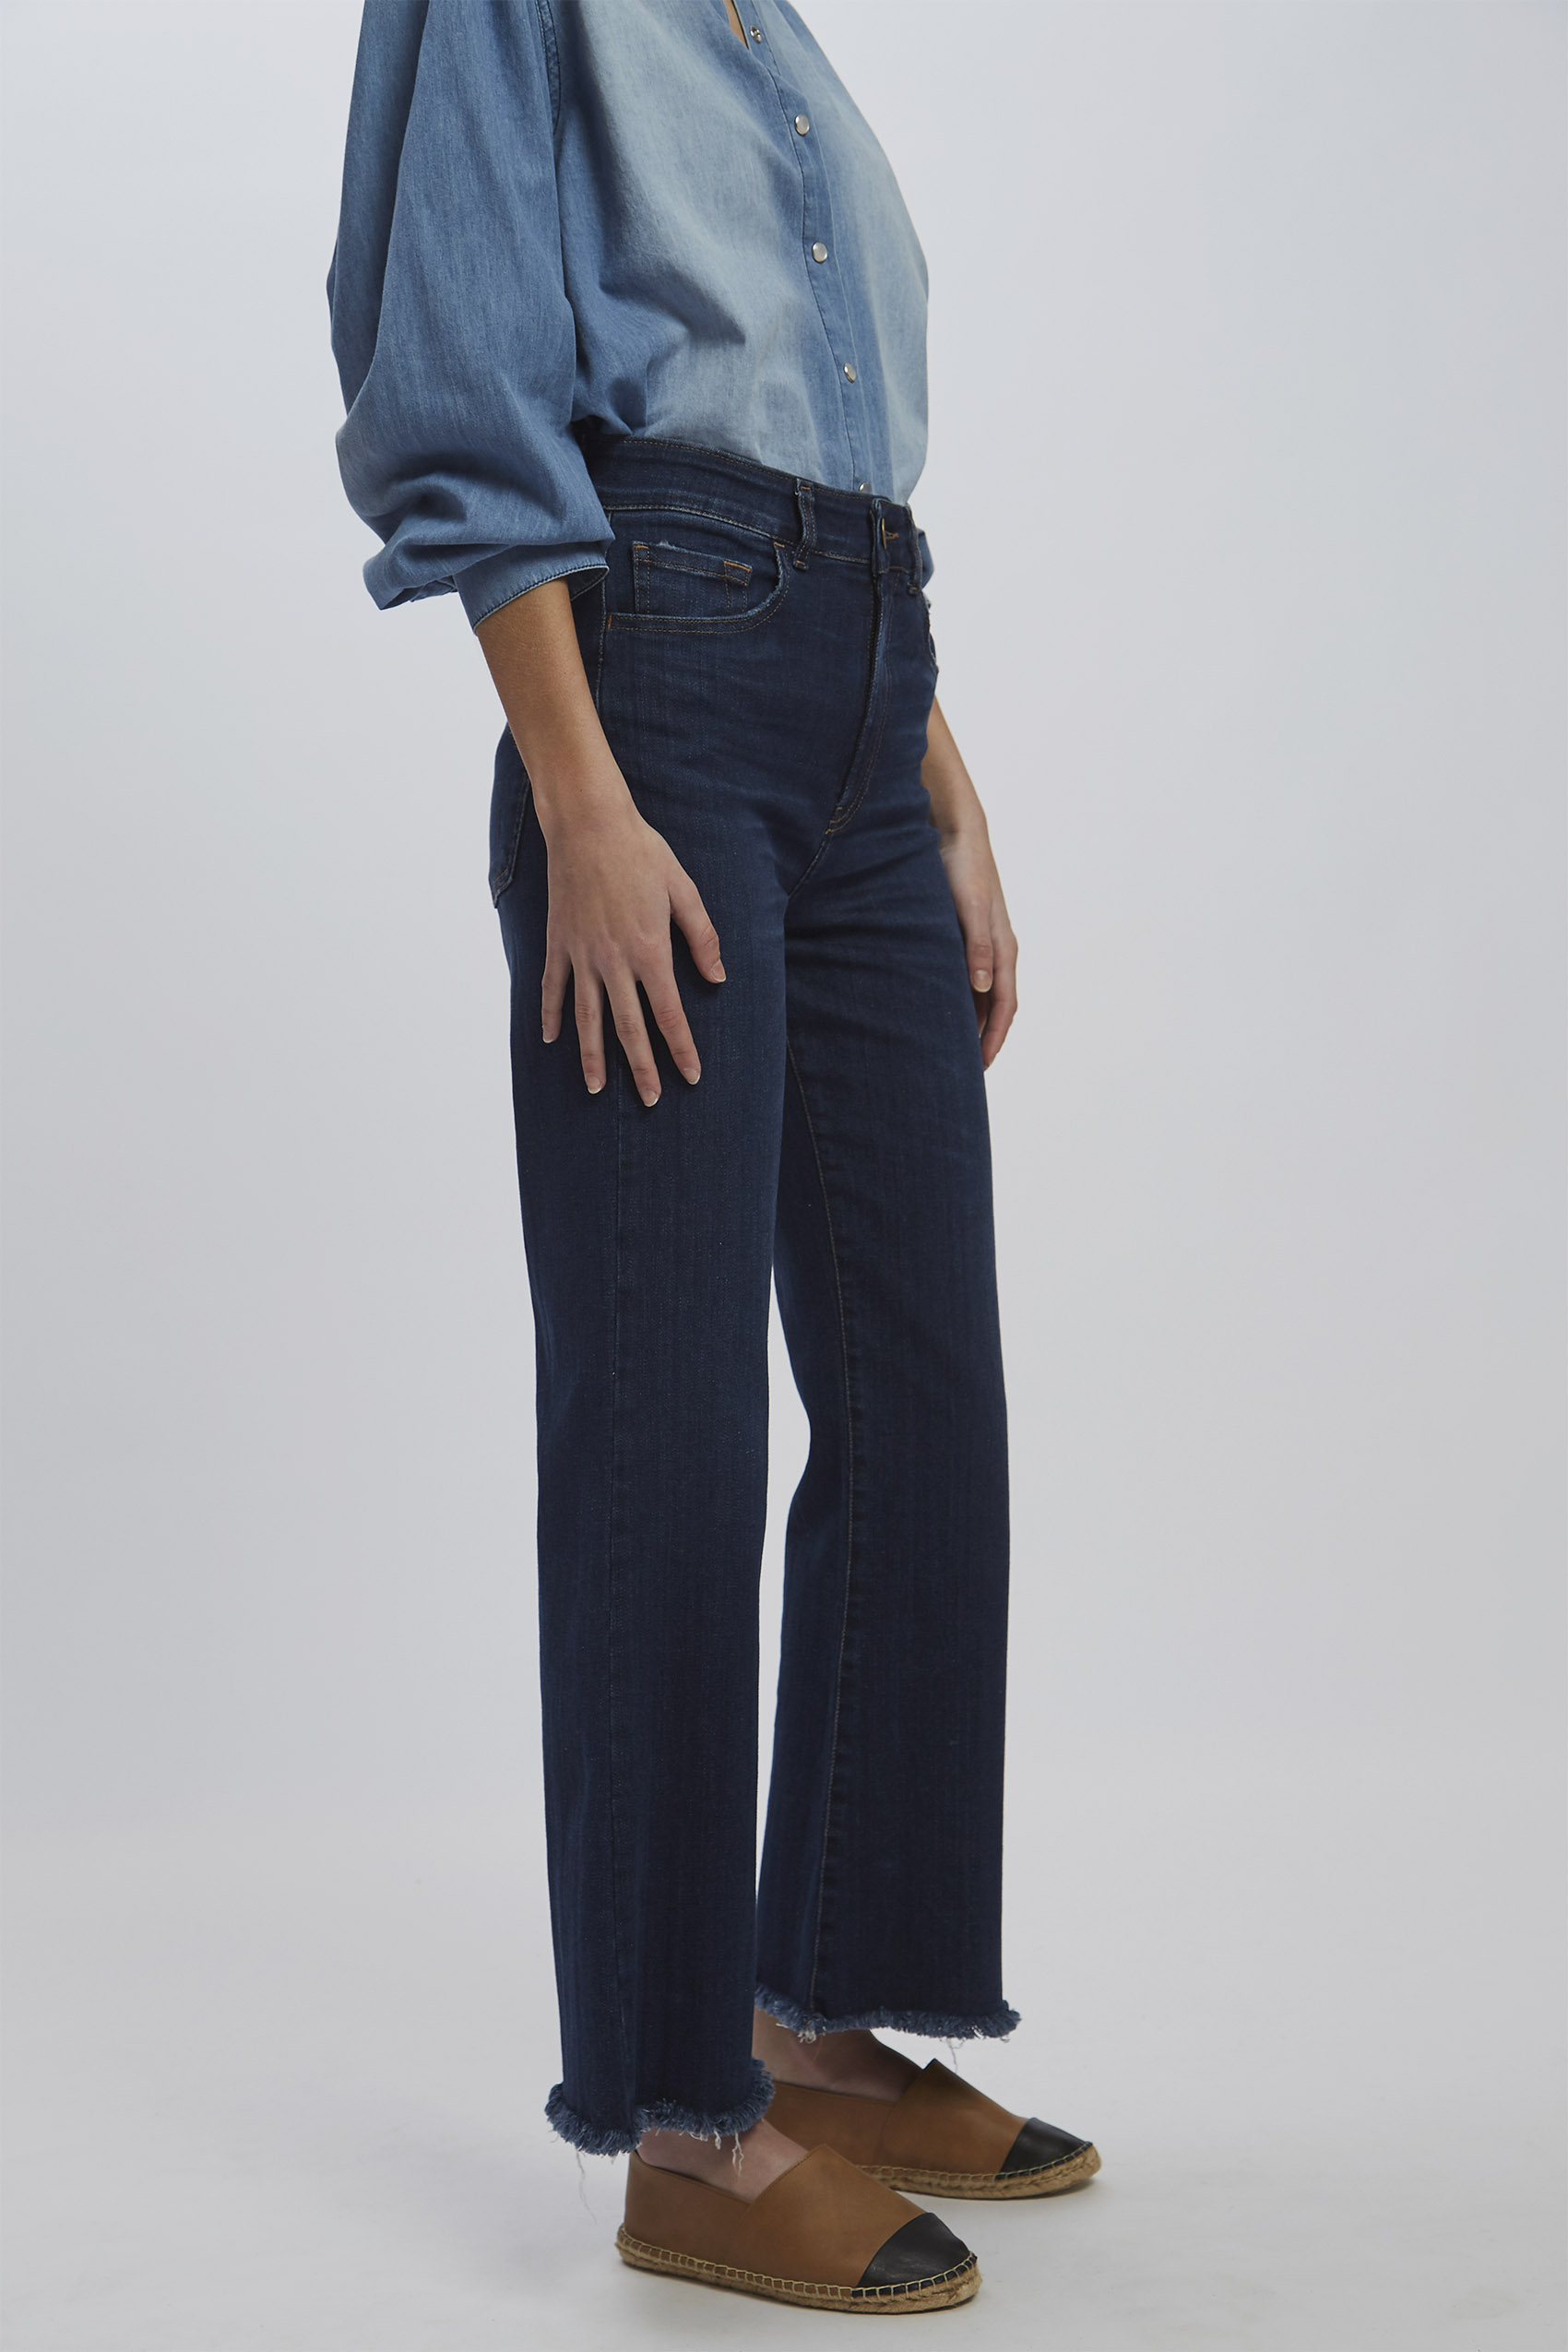 awada_oxford-cropped-jim_40-30-2020__picture-16276